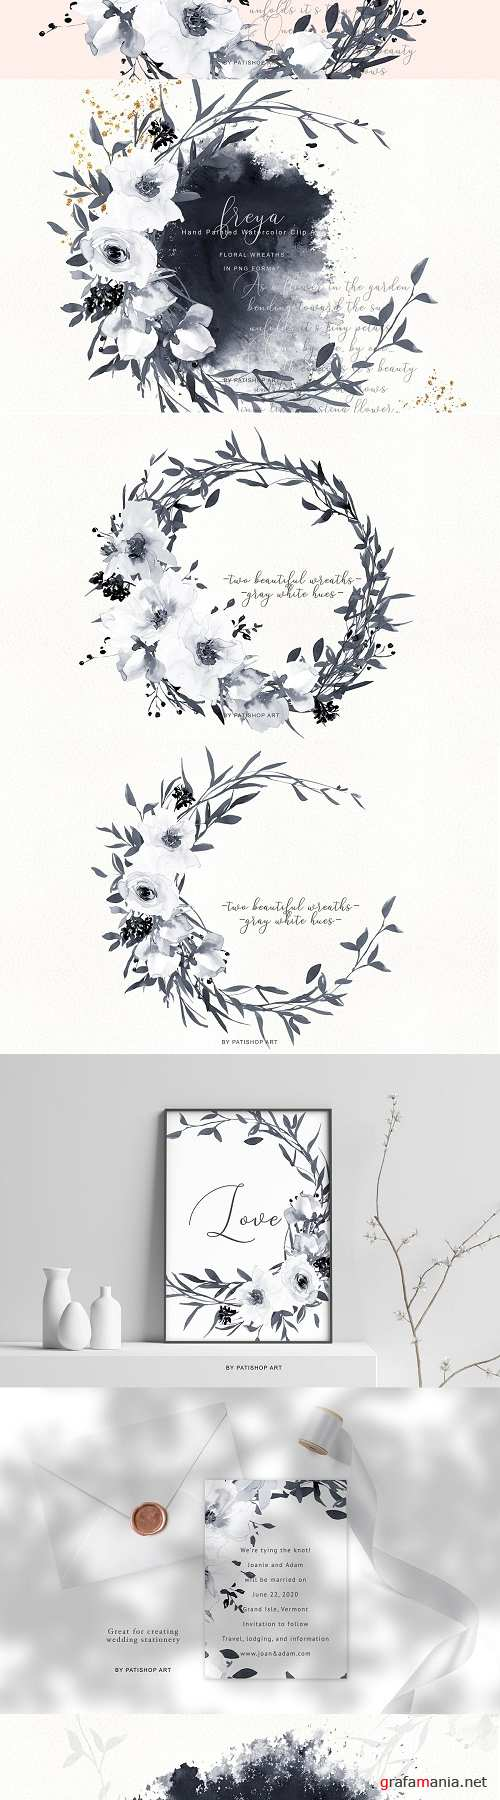 Gray & White Flowers Wreaths - 3784861